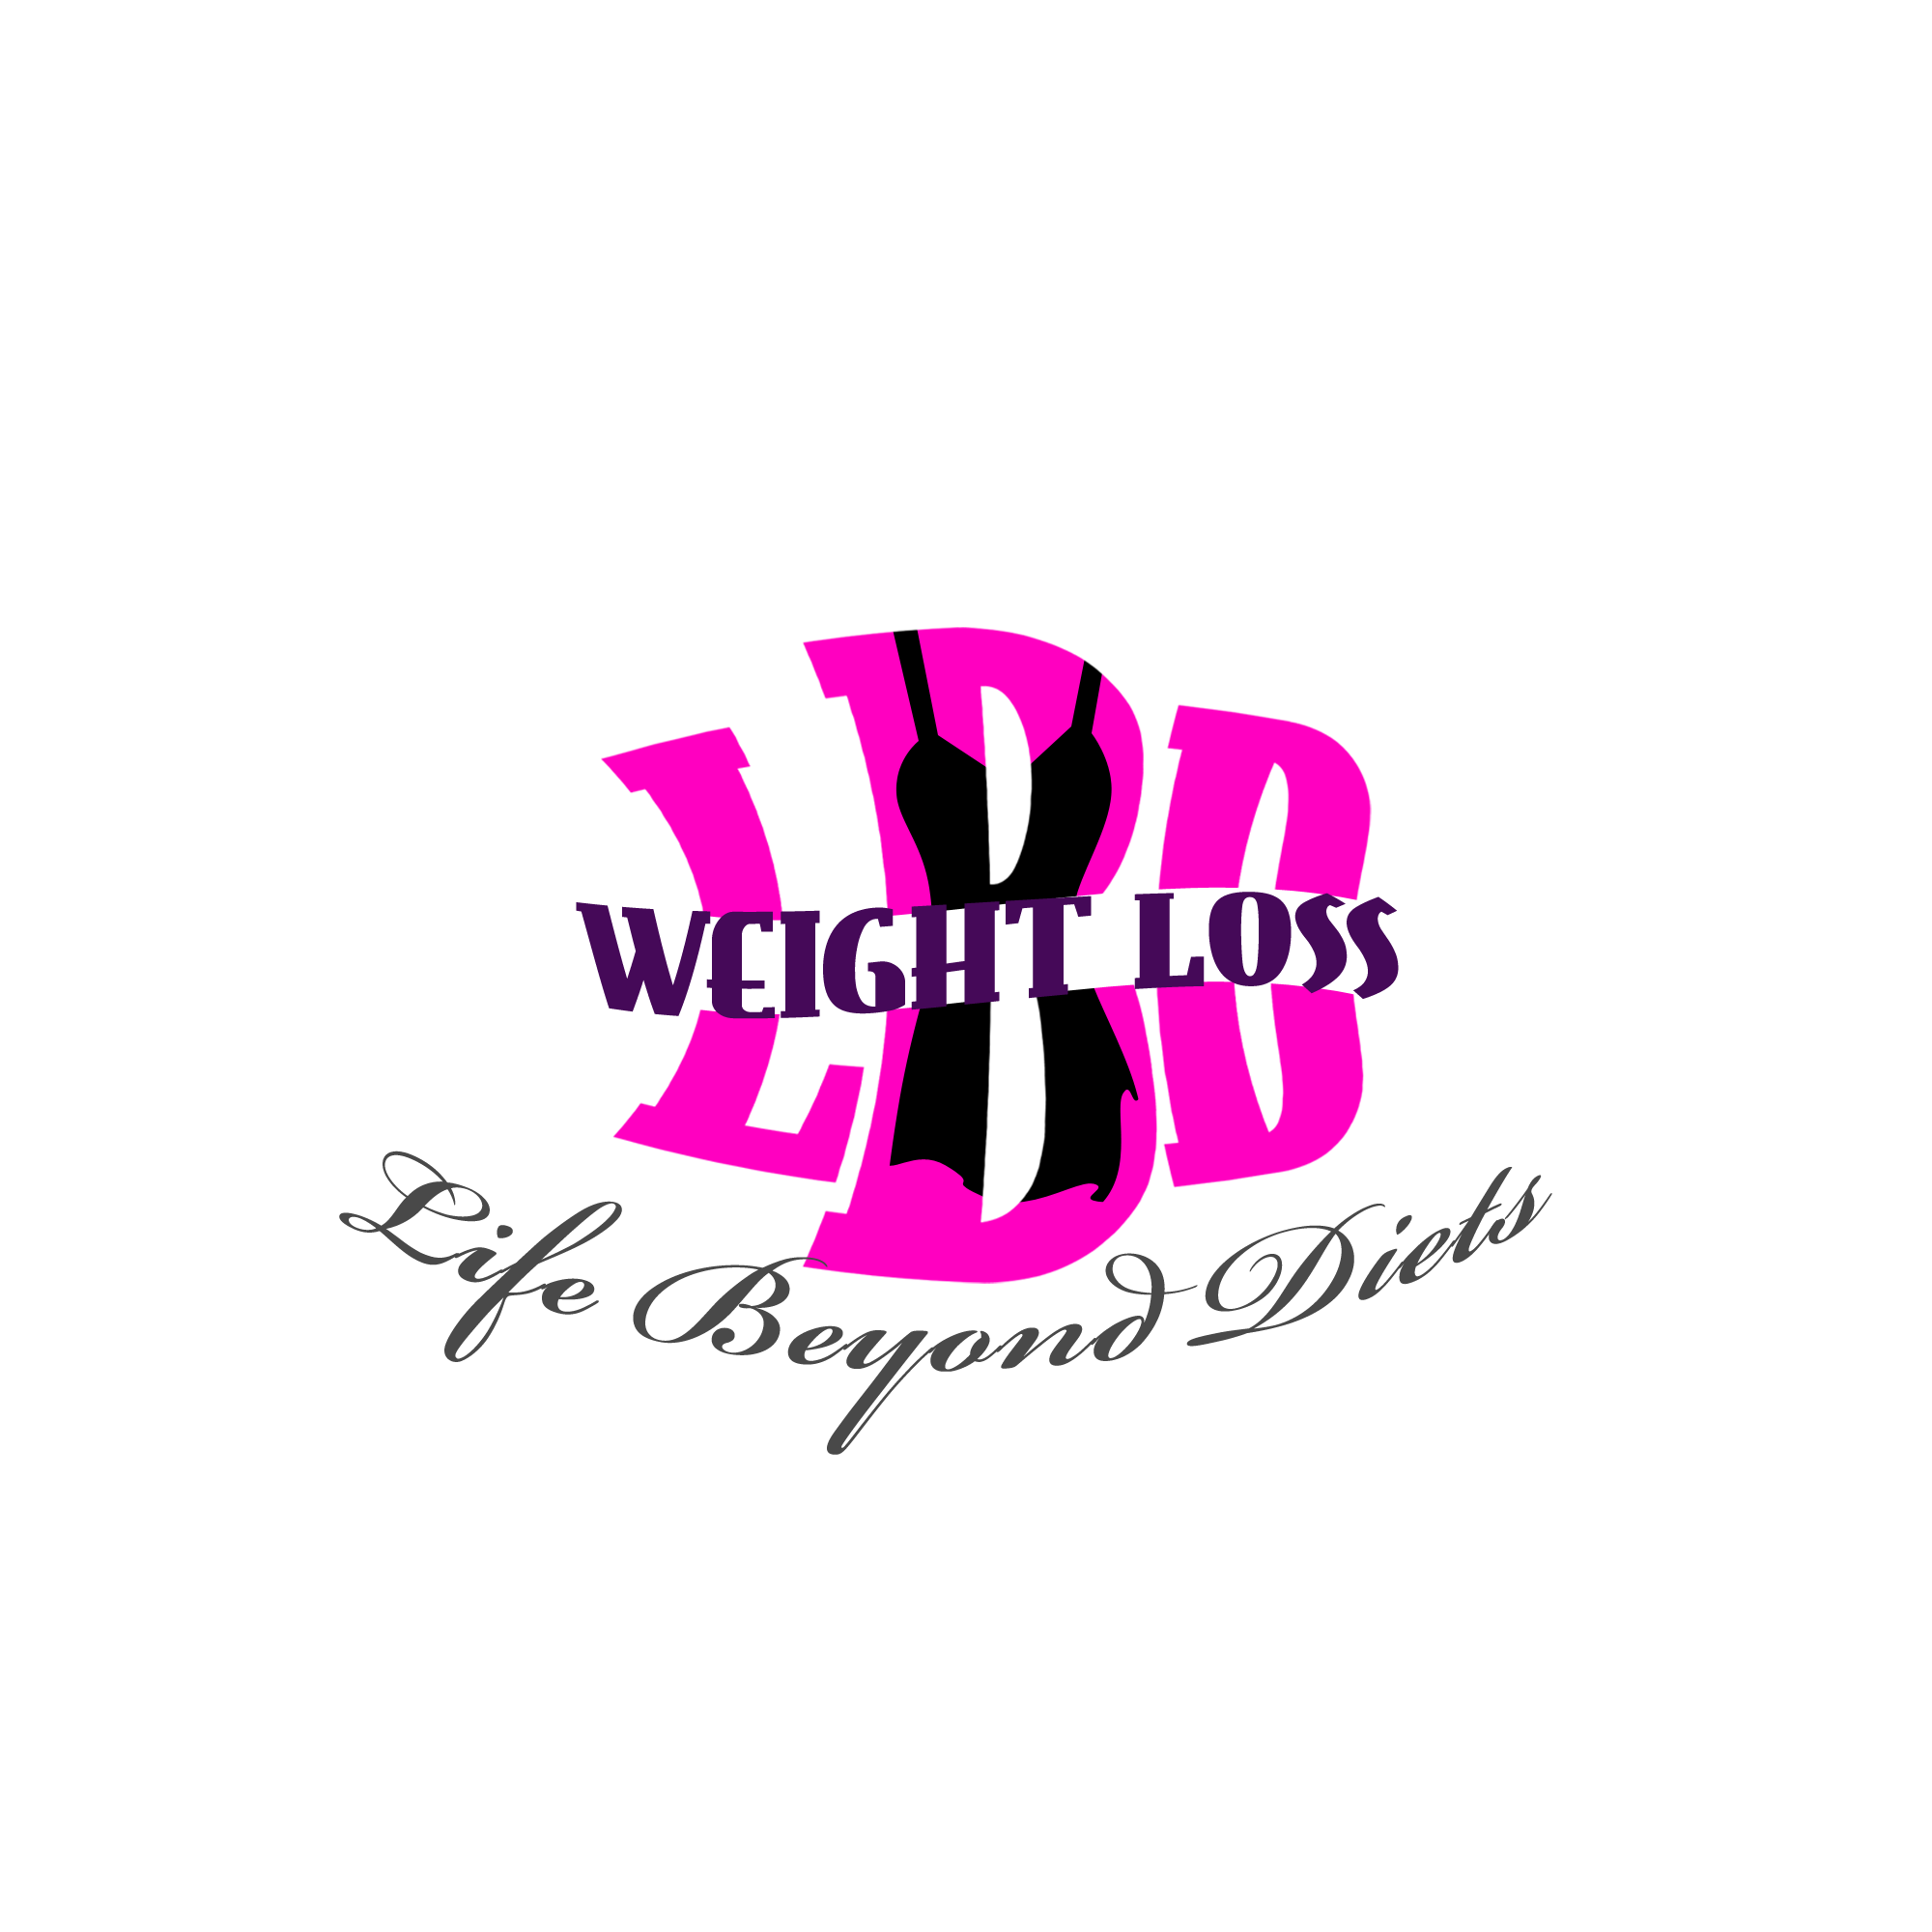 Logo Design by Kenneth Joel - Entry No. 51 in the Logo Design Contest Imaginative Logo Design for LBD Weight Loss.